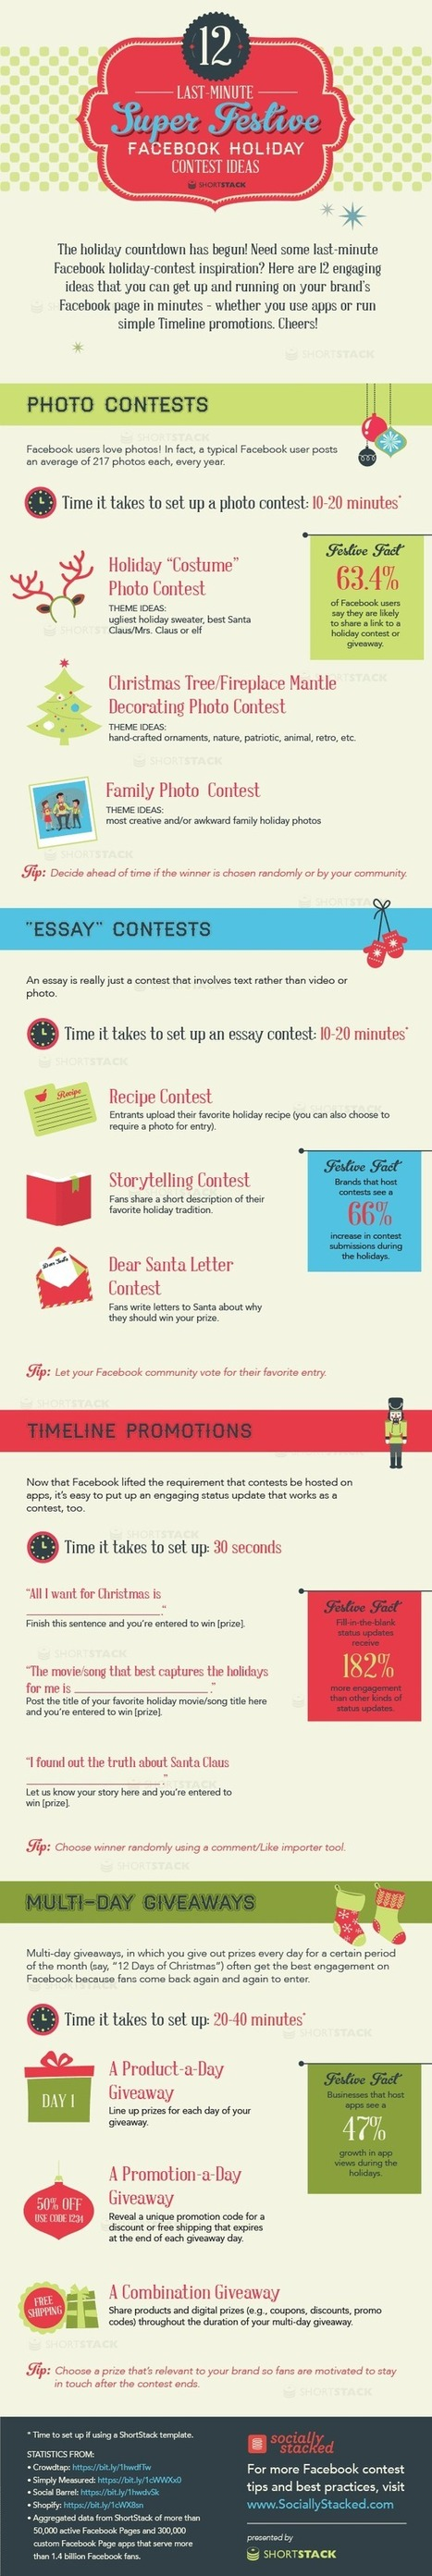 12 Last-Minute Festive Facebook Holiday Contests - Infographic | Better know and better use Social Media today (facebook, twitter...) | Scoop.it